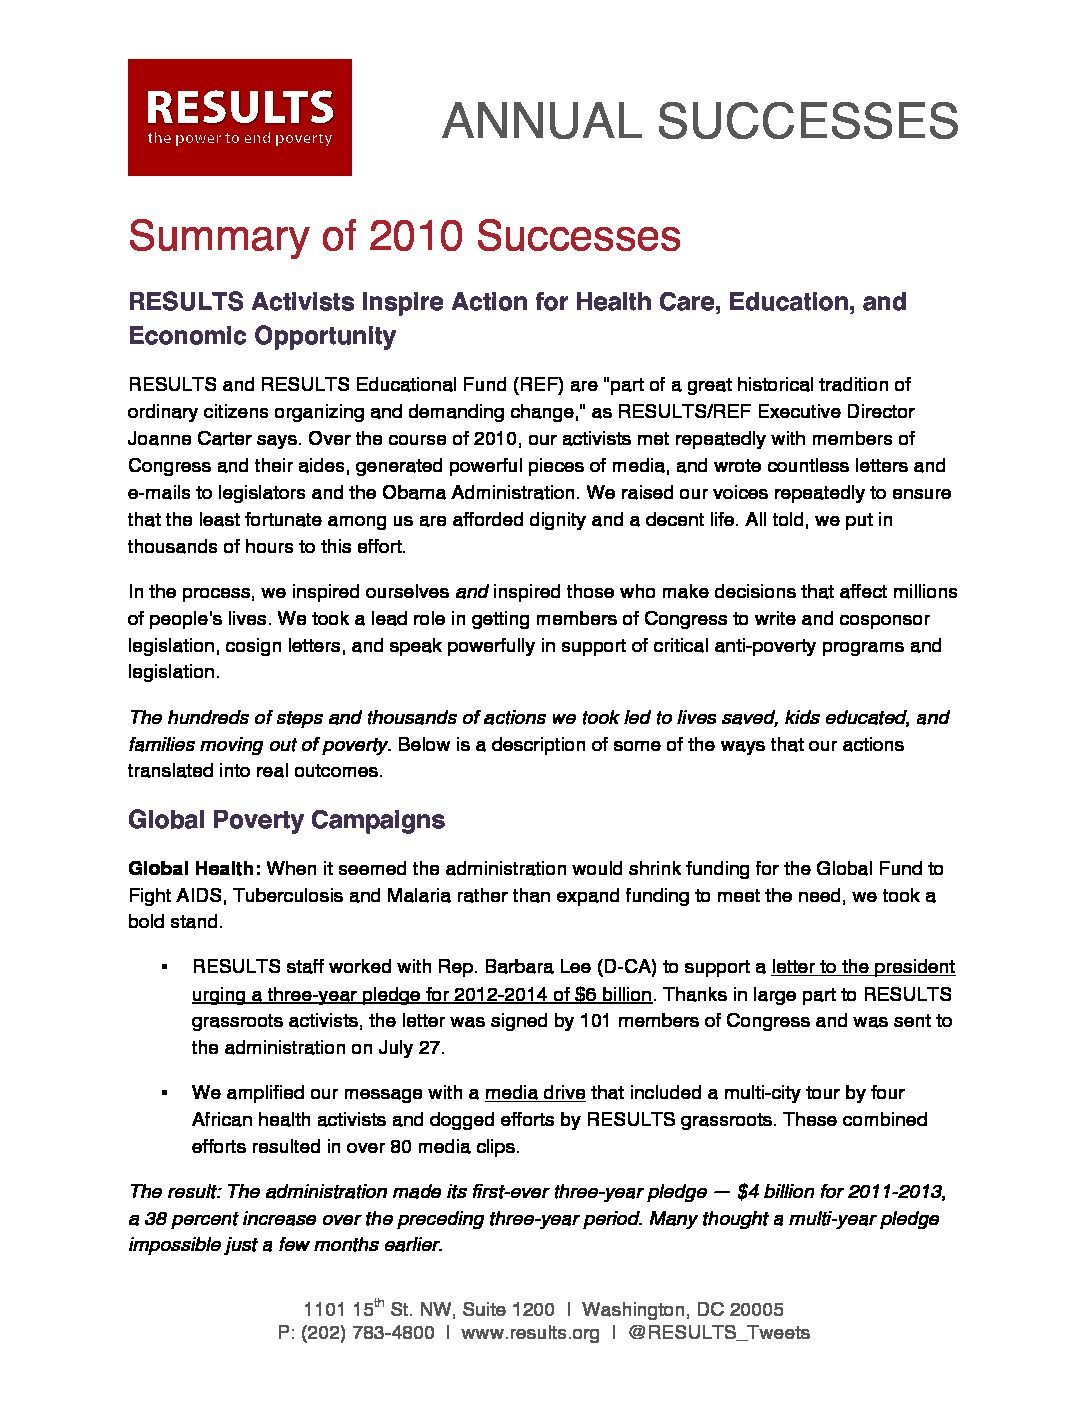 Annual Successes 2010